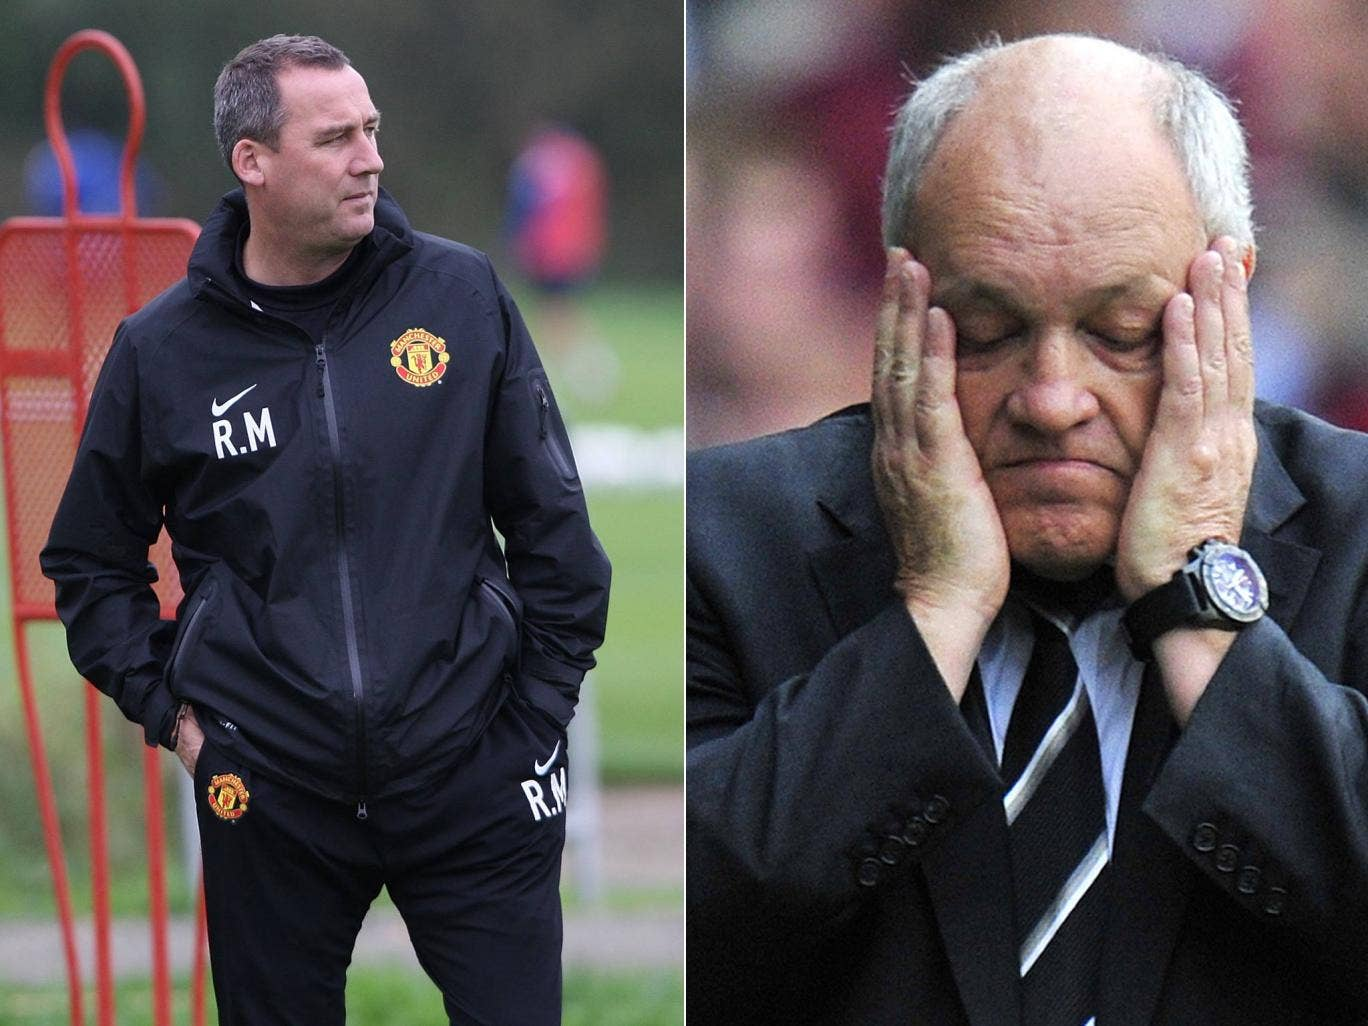 Rene Meulensteen and Martin Jol